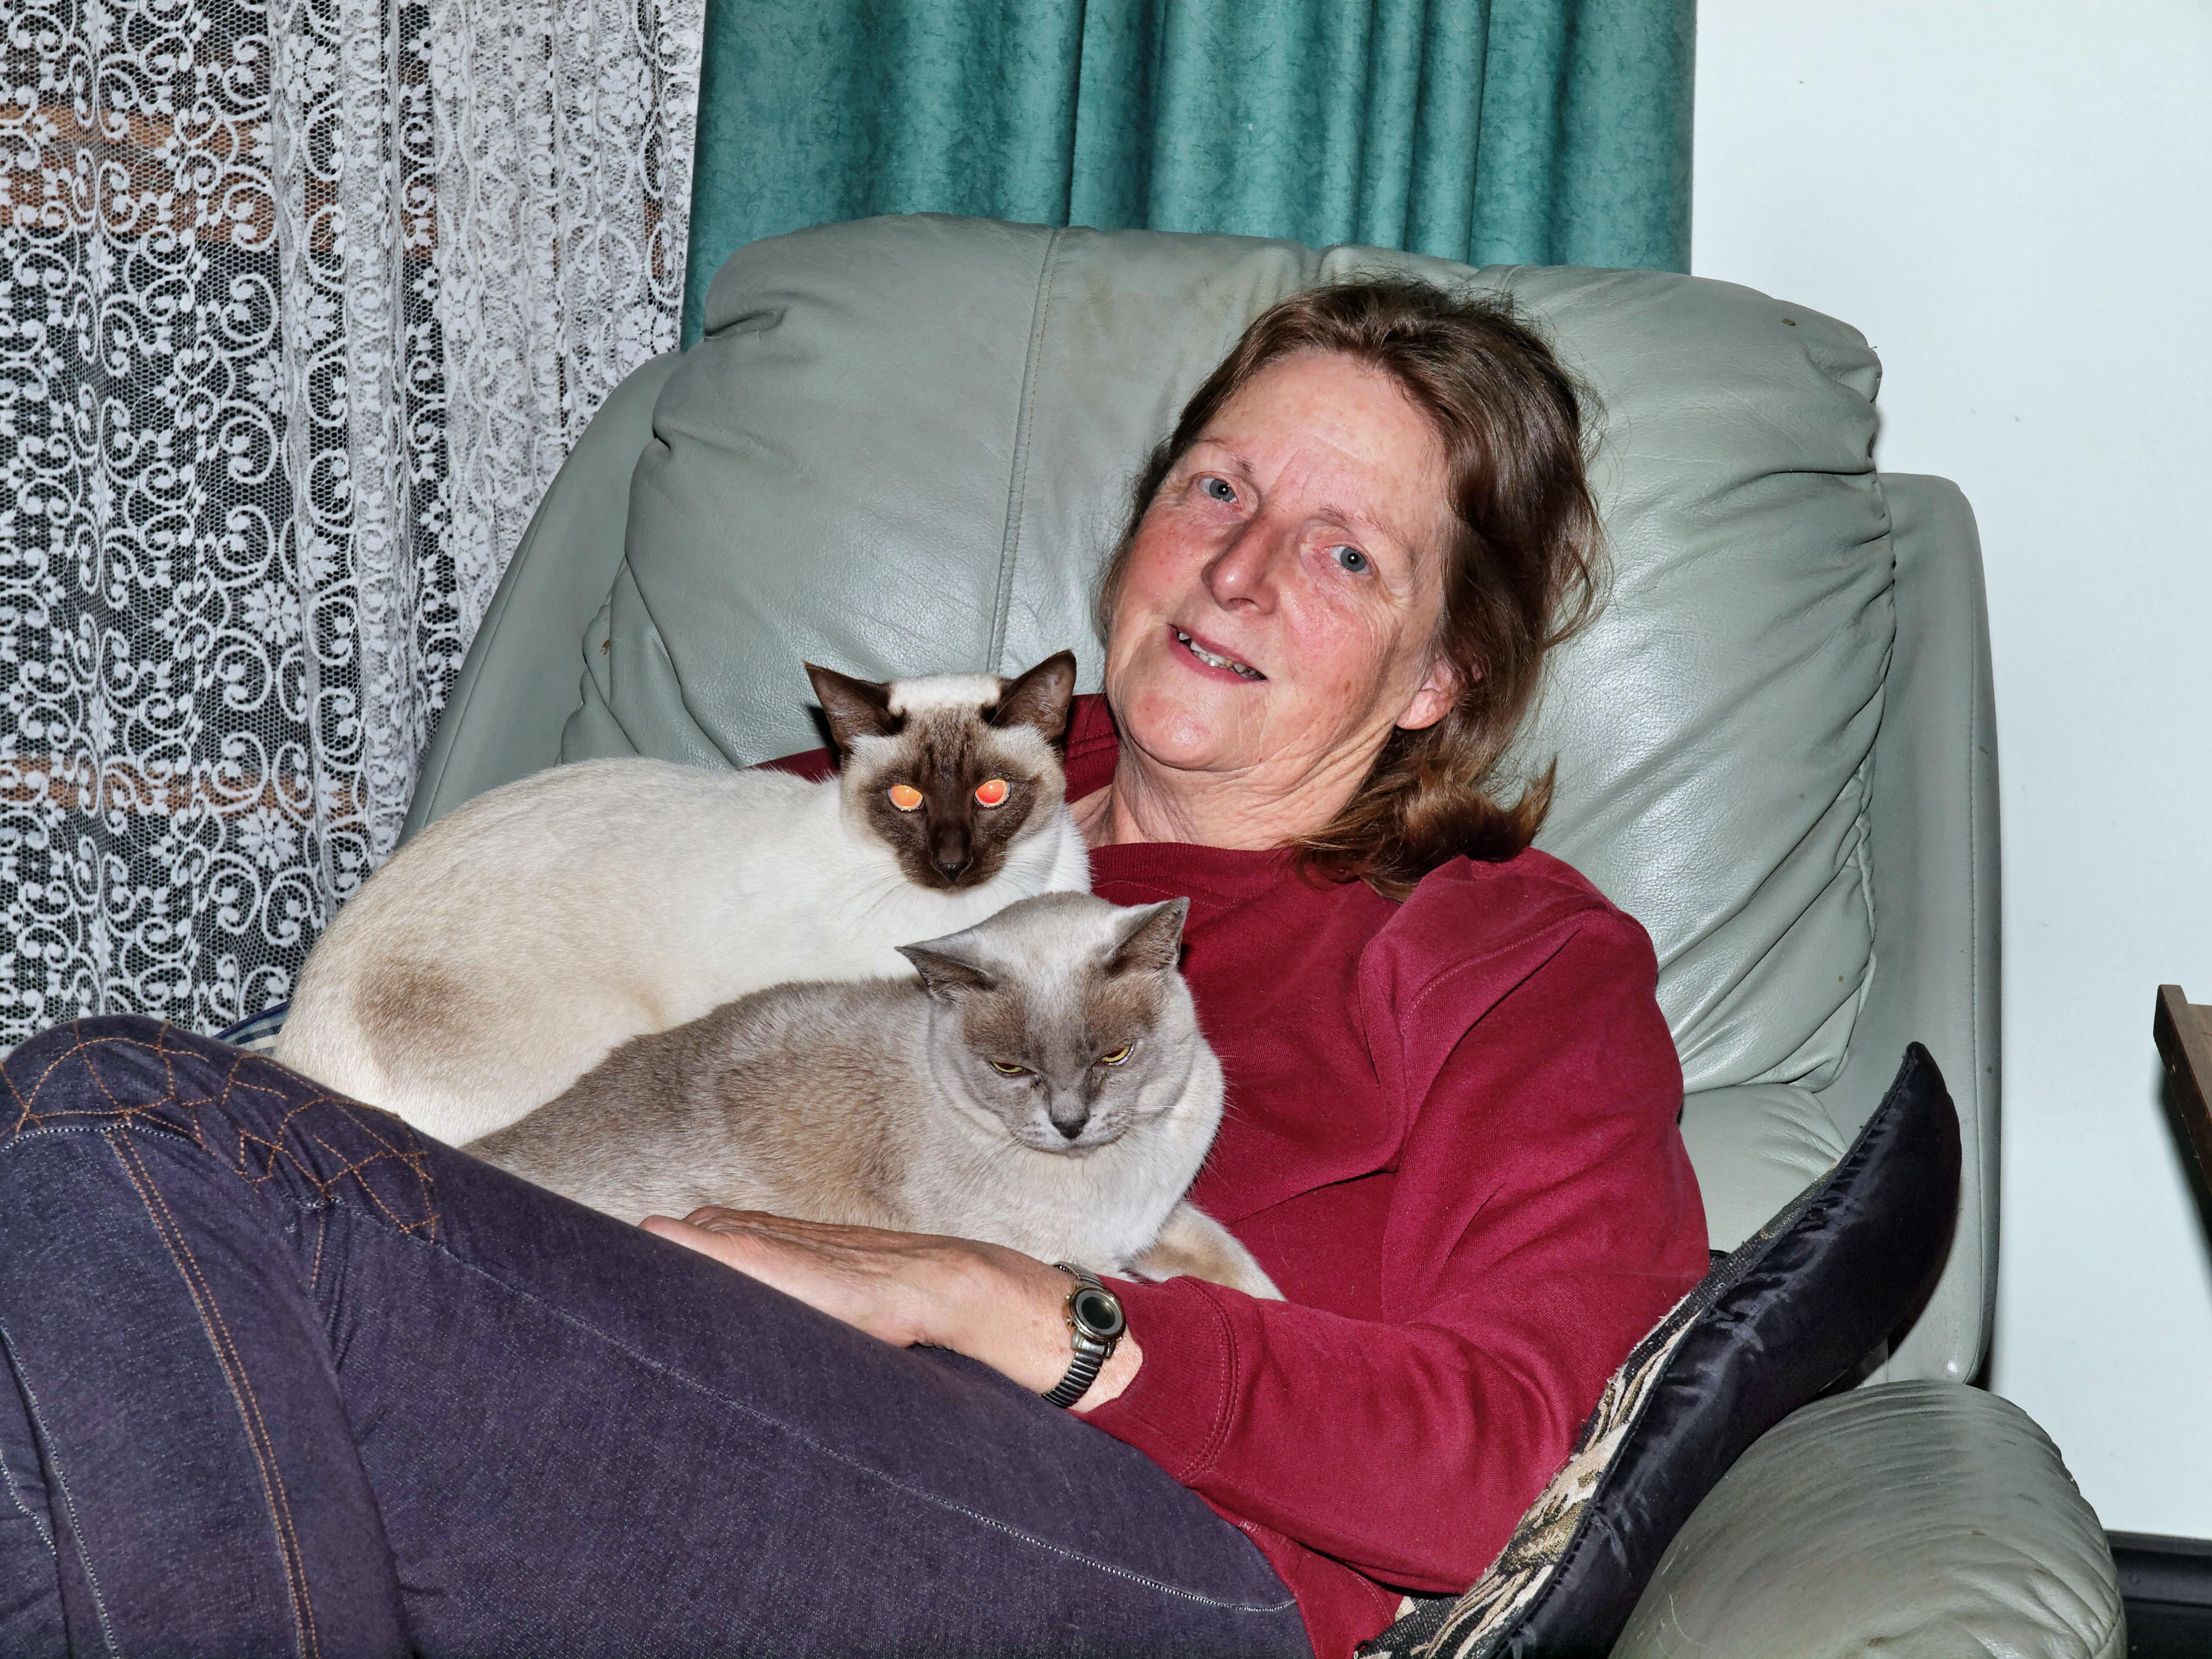 Yvonne-with-cats-1.jpeg